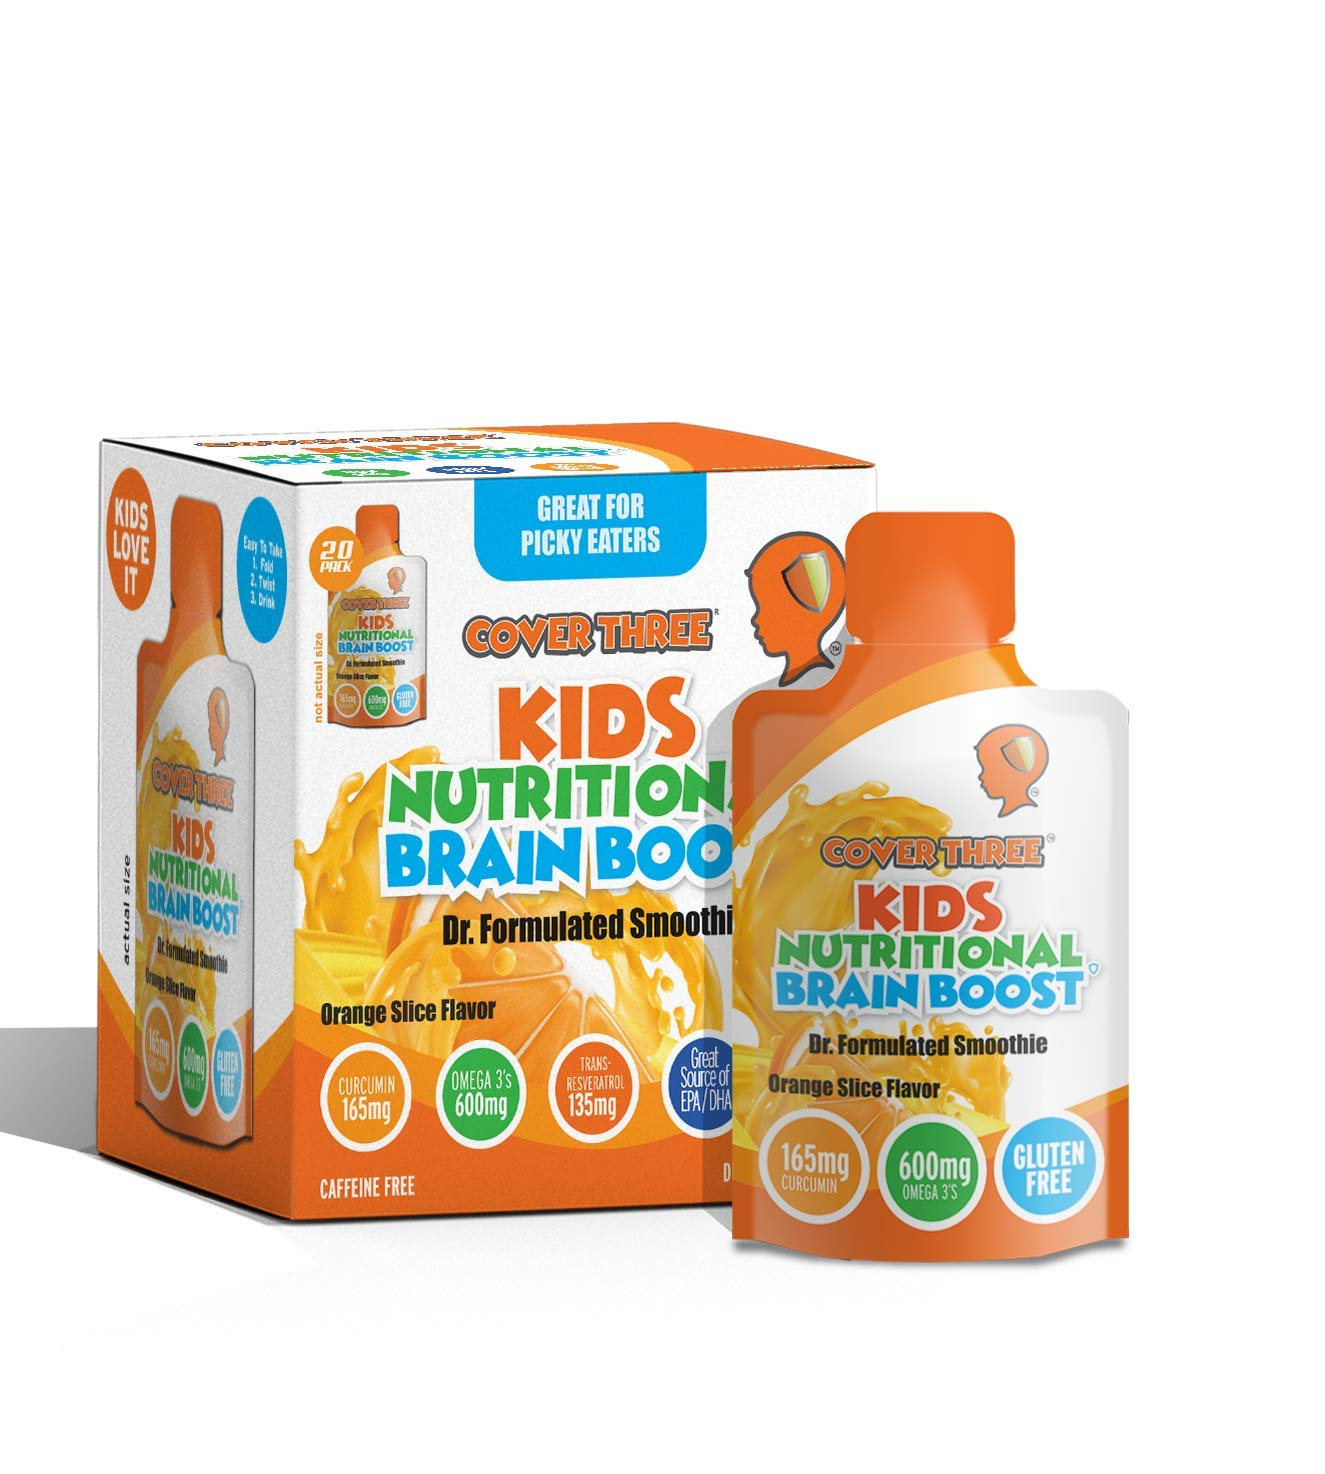 Kids Nutritional Brain Supplement with Immune Boosters - Healthy Brain Function, Vision & Heart Health - Omega Fish Oil DHA EPA, VIT C, Turmeric - Boost Child Memory & Focus - Liquid Squeeze Pouch by Cover Three